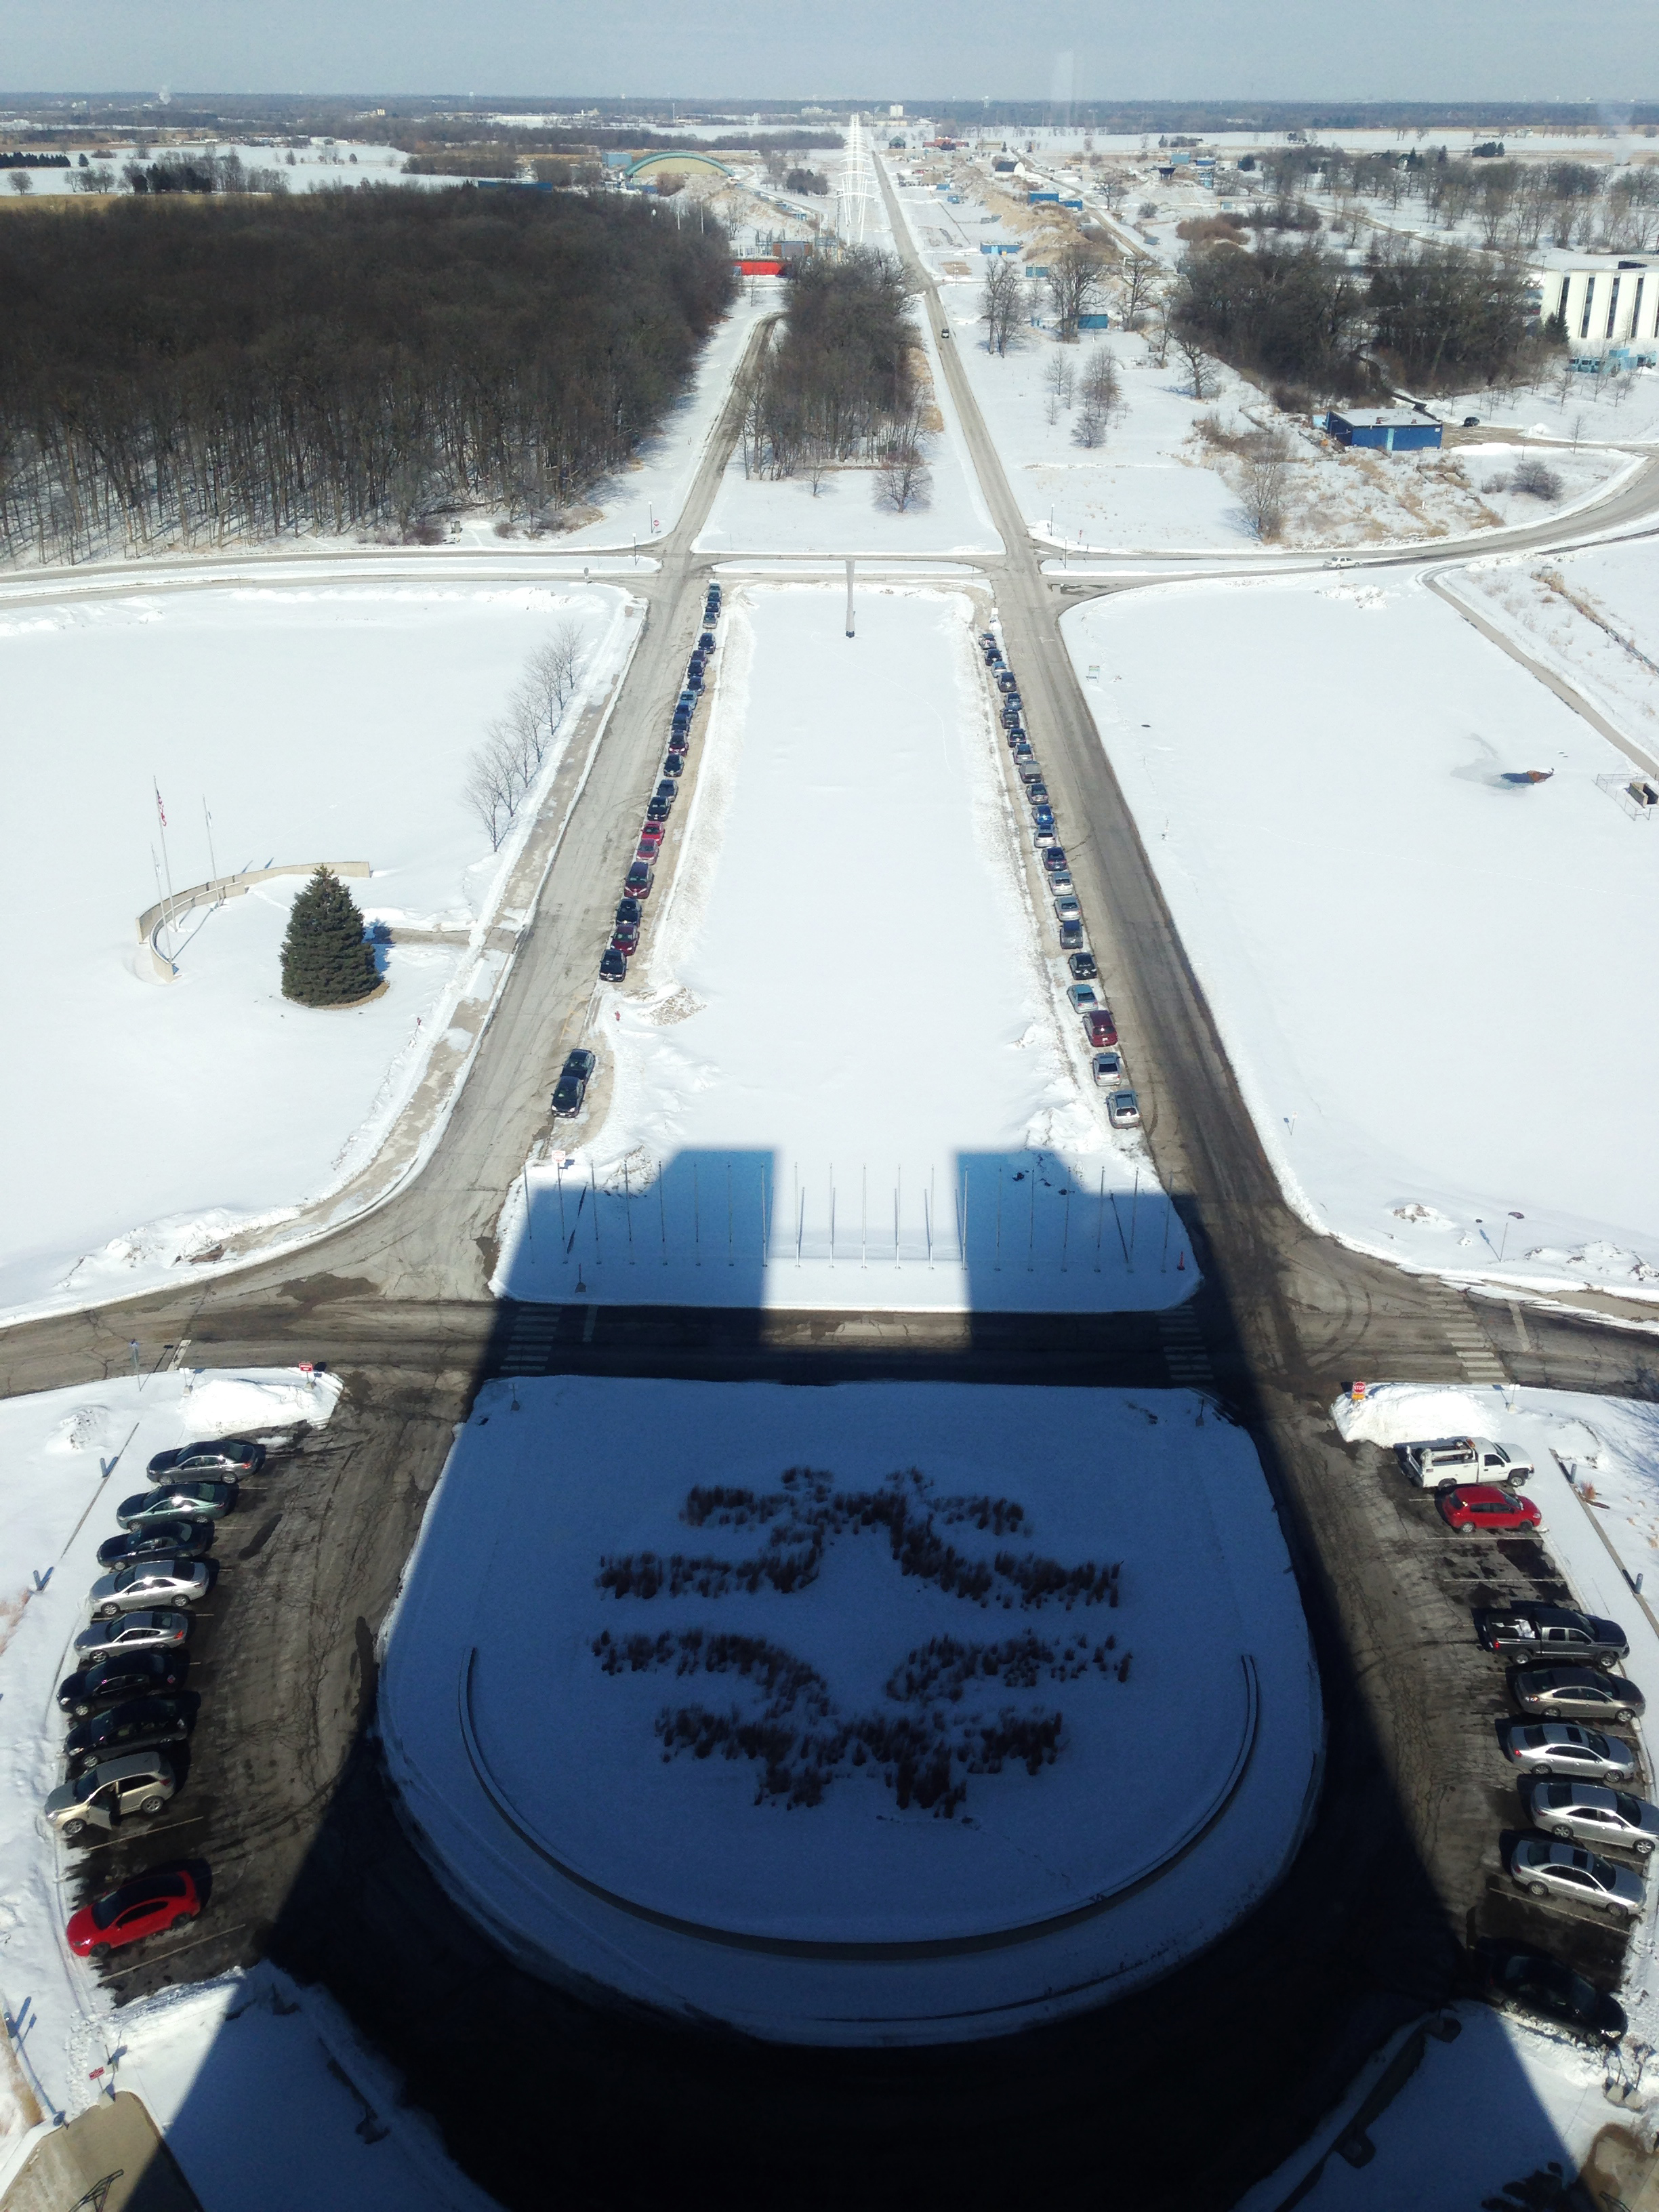 At 2:10 p.m. on Tuesday, the 100th anniversary of Robert Wilson's birth, the shadow of Wilson Hall aligned perfectly with Road A near Wilson Hall. See part 2. Photo: Gene Kafka, Illinois Institute of Technology